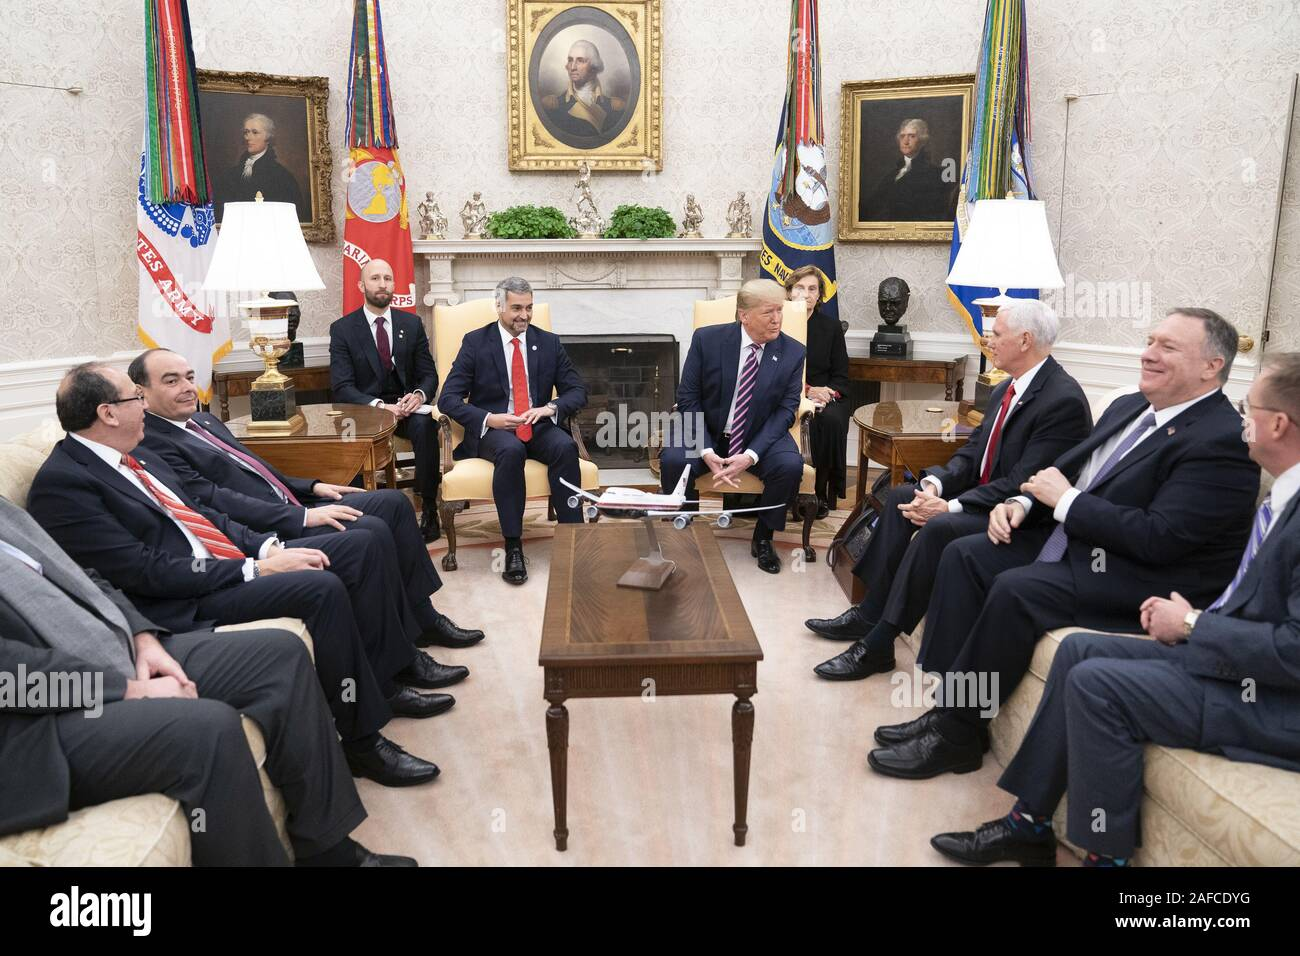 Washington, United States Of America. 13th Dec, 2019. President Donald J. Trump and Vice President Mike Pence, joined by White House senior advisors, participates in an expanded bilateral meeting with Paraguay President Mario Abdo Benitez Friday, Dec. 13, 2019, in the Oval Office of the White House People: President Donald J. Trump, Mario Abdo Benitez Credit: Storms Media Group/Alamy Live News Stock Photo